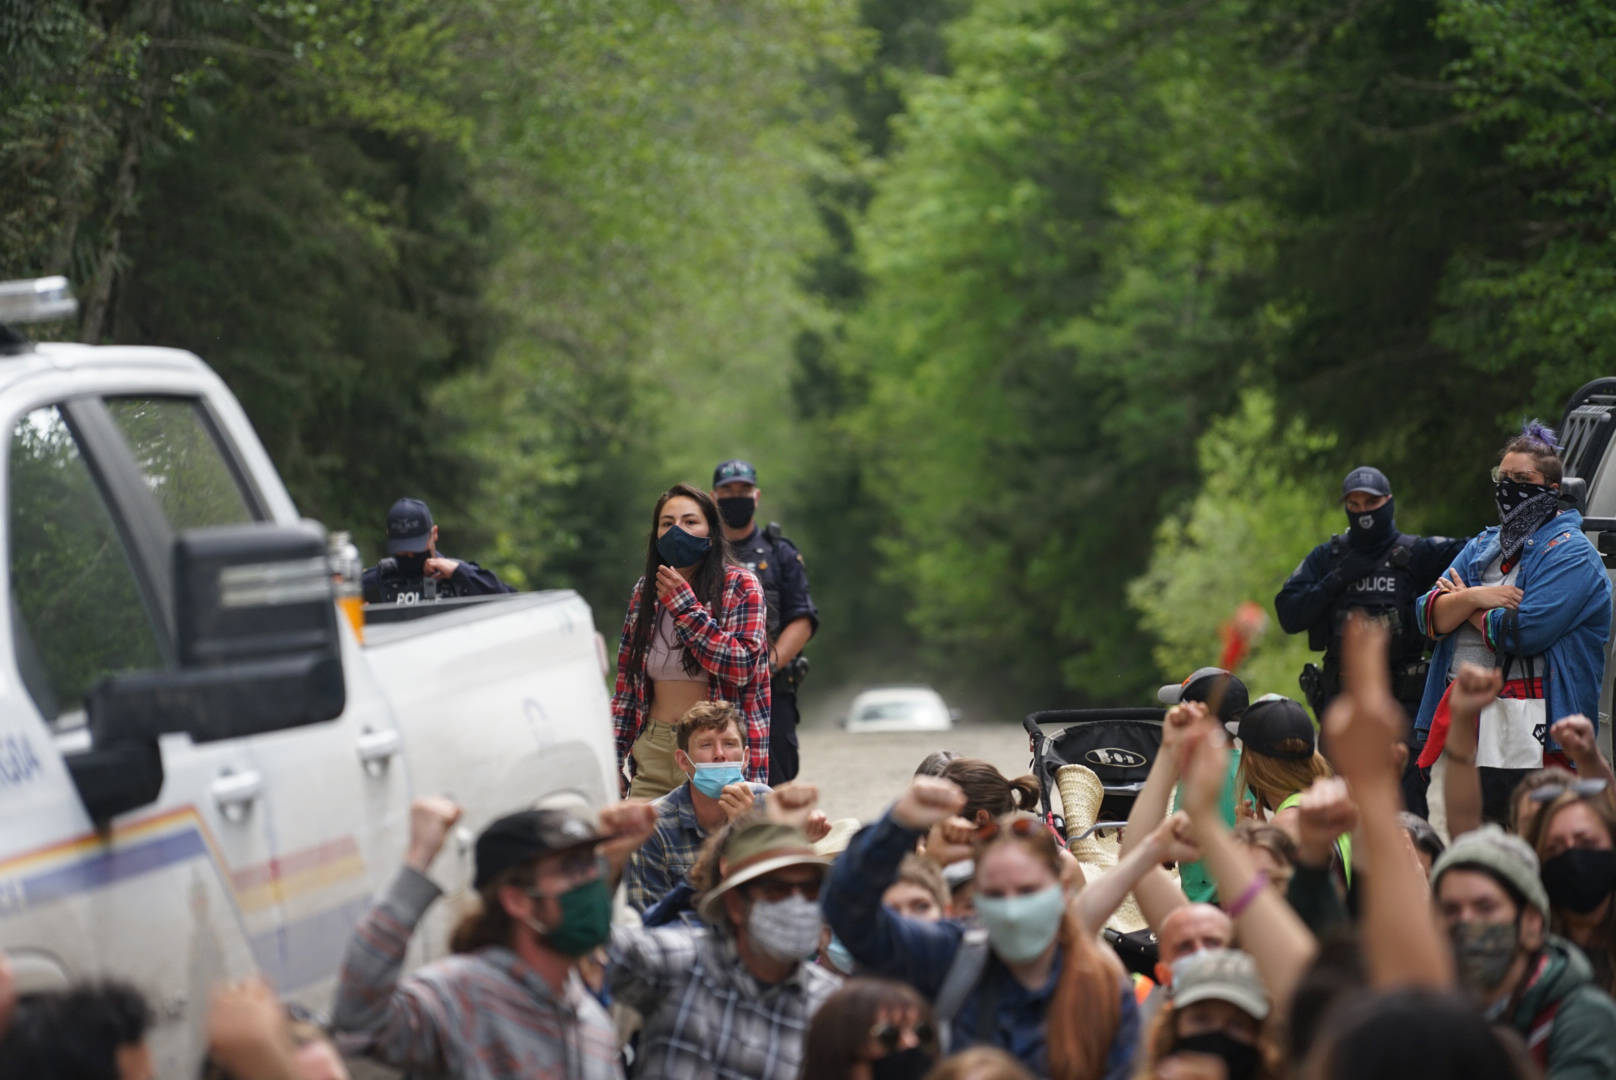 On Saturday a group of protestors peacefully walked past an RCMP checkpoint at Caycuse. Several were later arrested. (Tristan Crosby/Submitted)